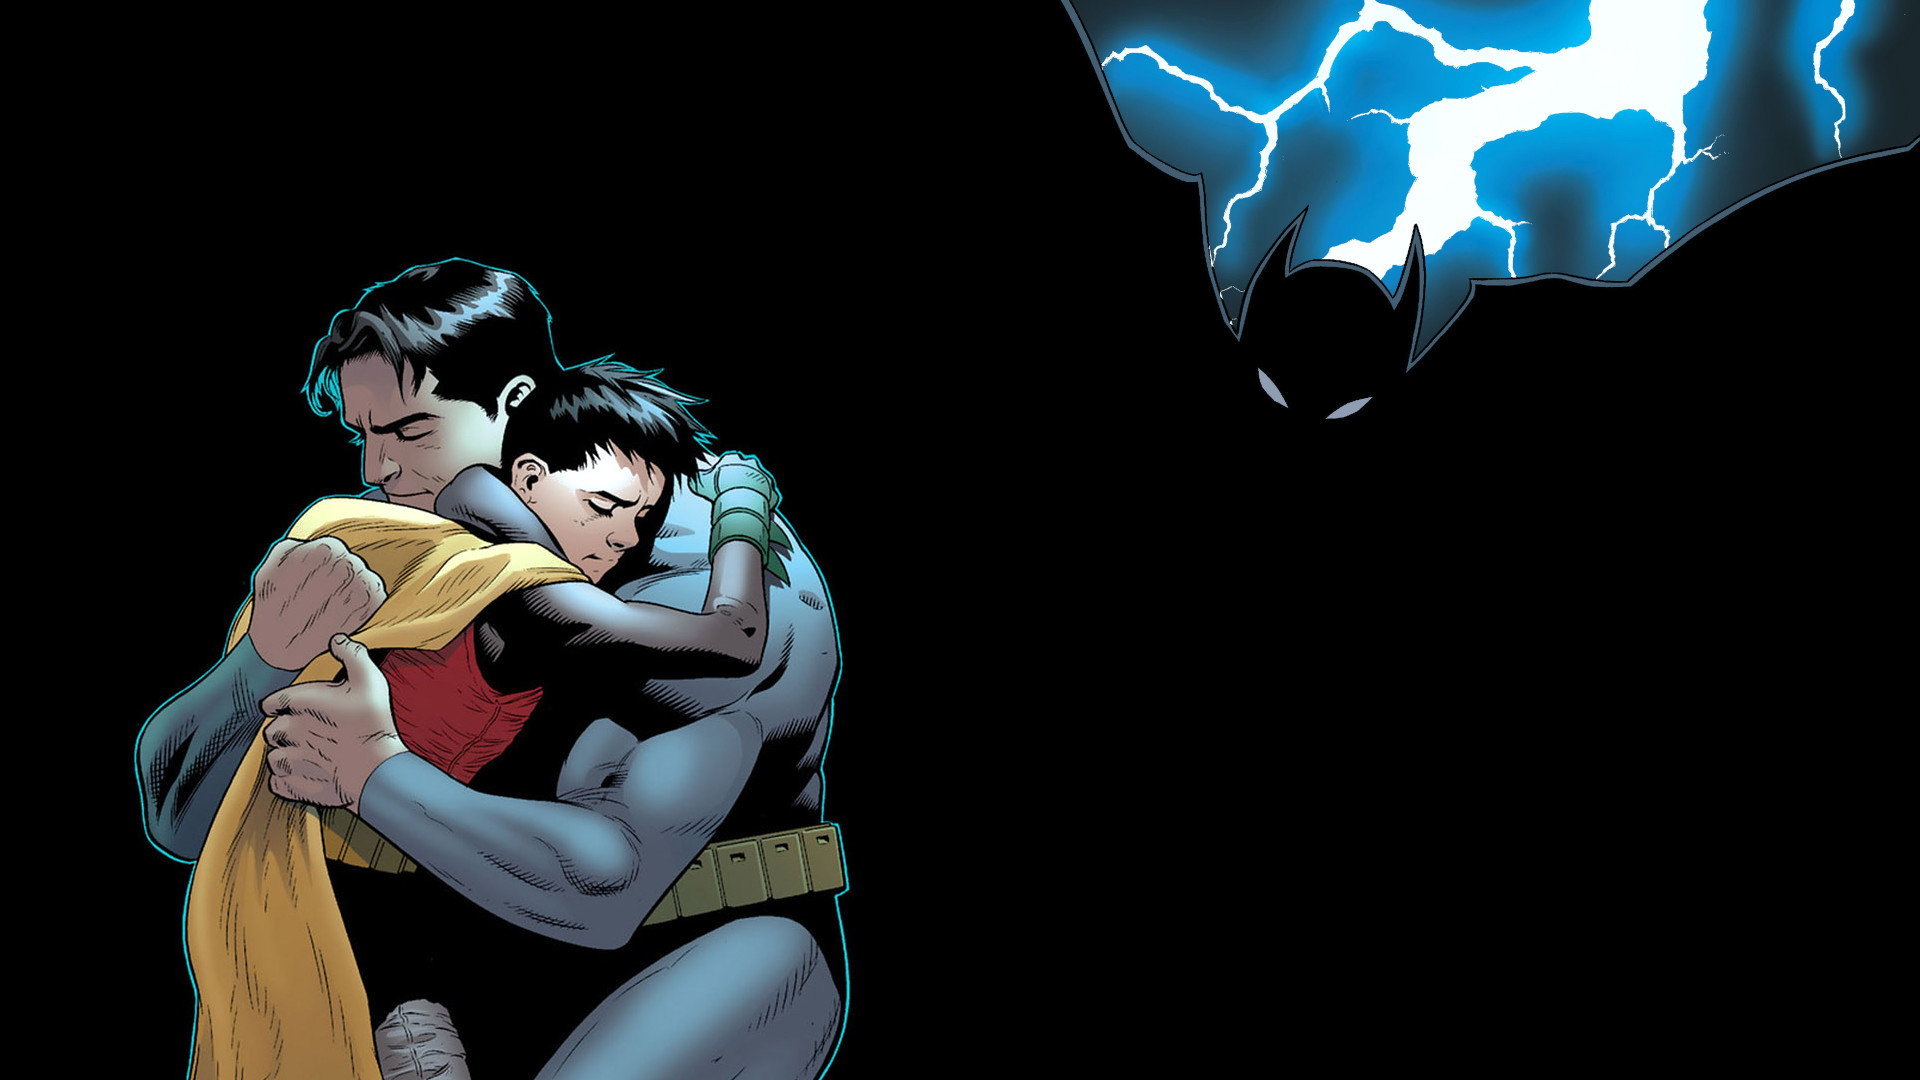 1920x1080 Batman Robin Hug Embrace Lightning Black DC-comics wallpaper .